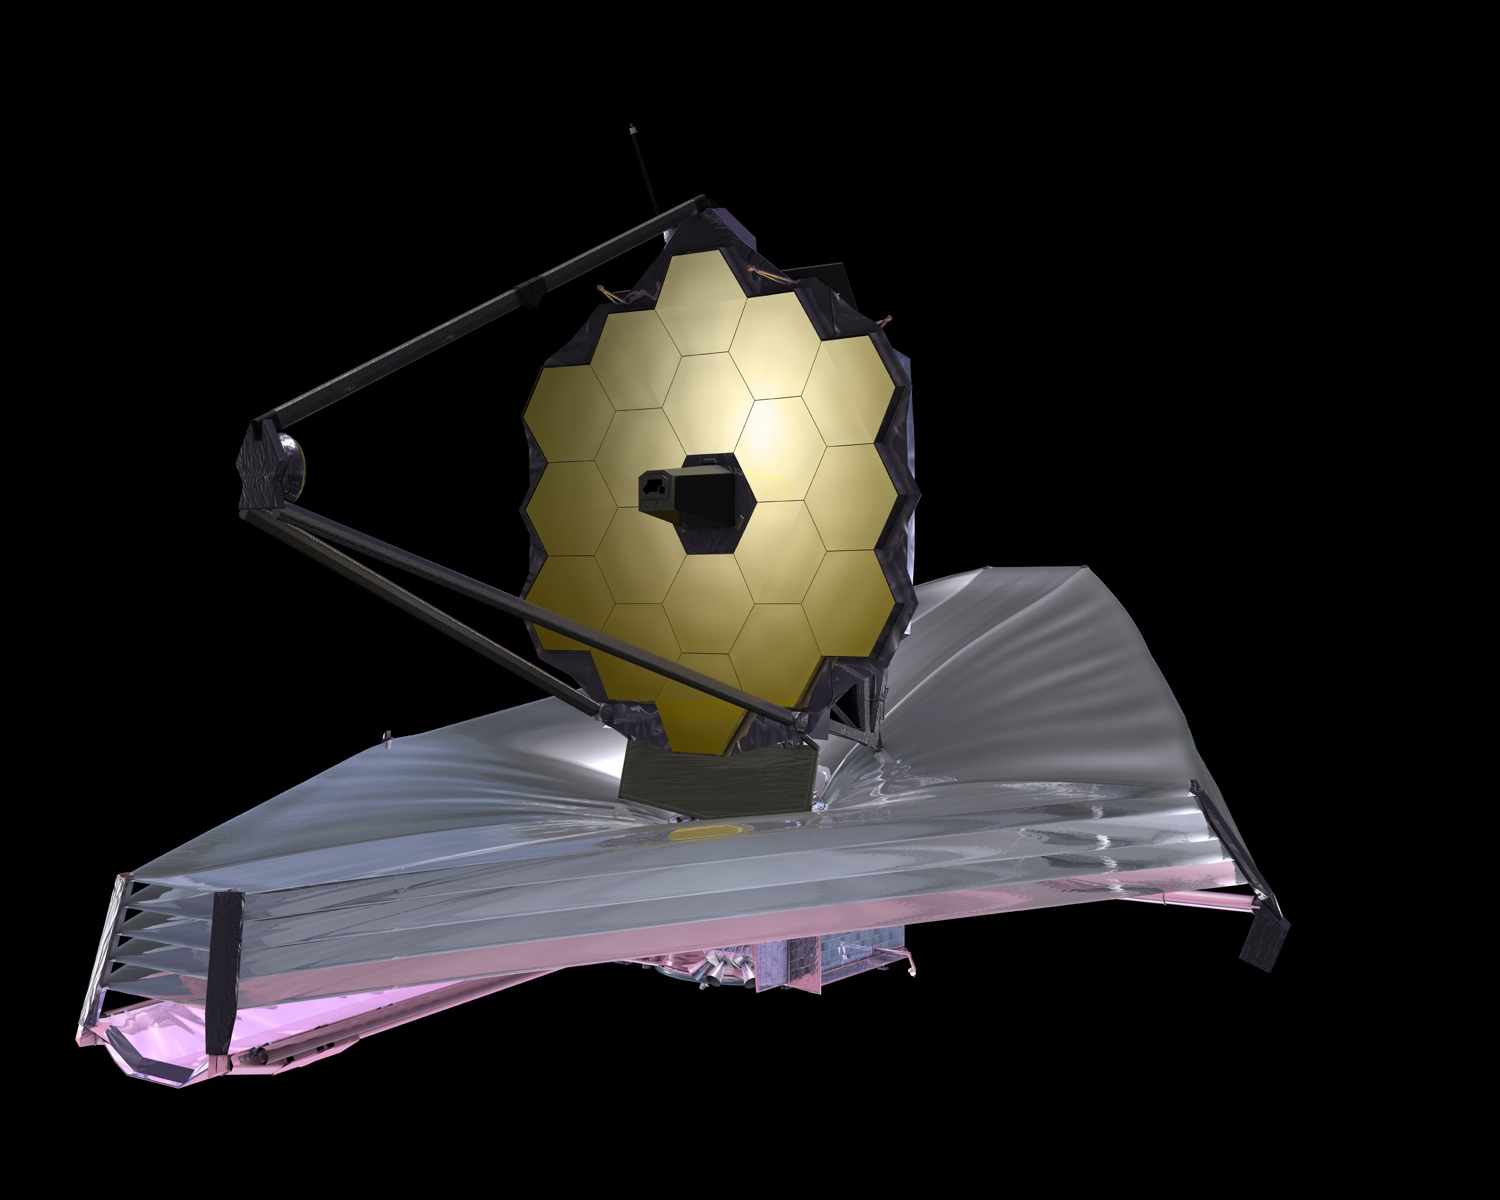 The James Webb Space Telescope will peer at the red planet to learn more about its watery past, among other things.